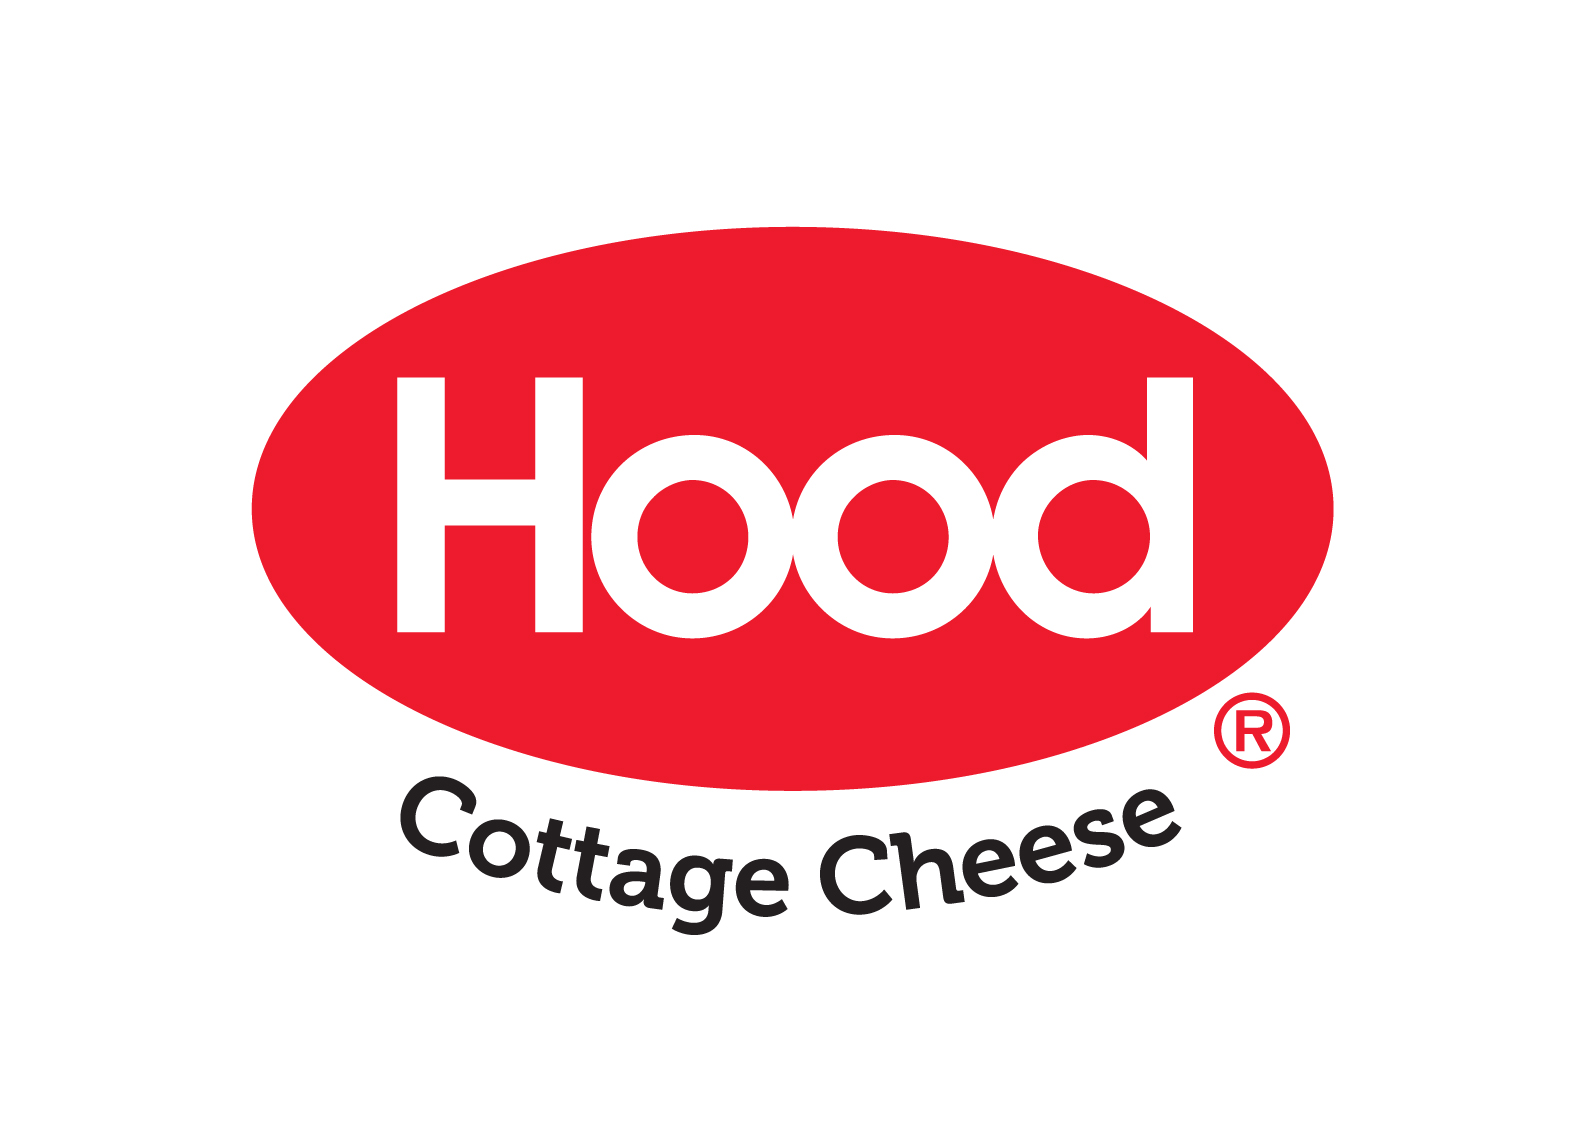 Hood Cottage Cheese 2020 logo